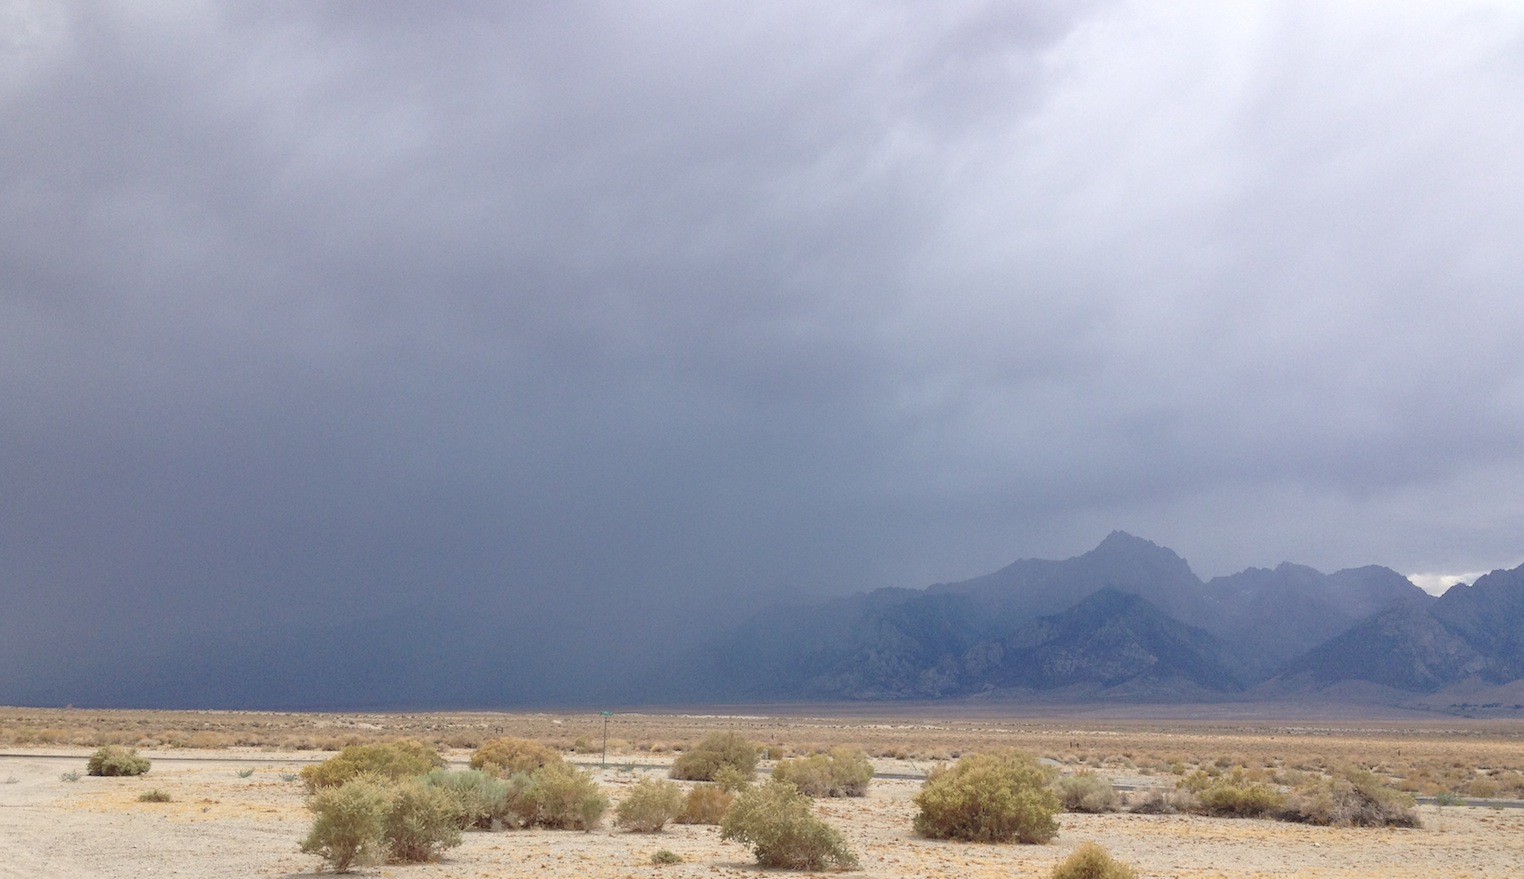 Afternoon rain on July 8 just south of Mt. Williamson